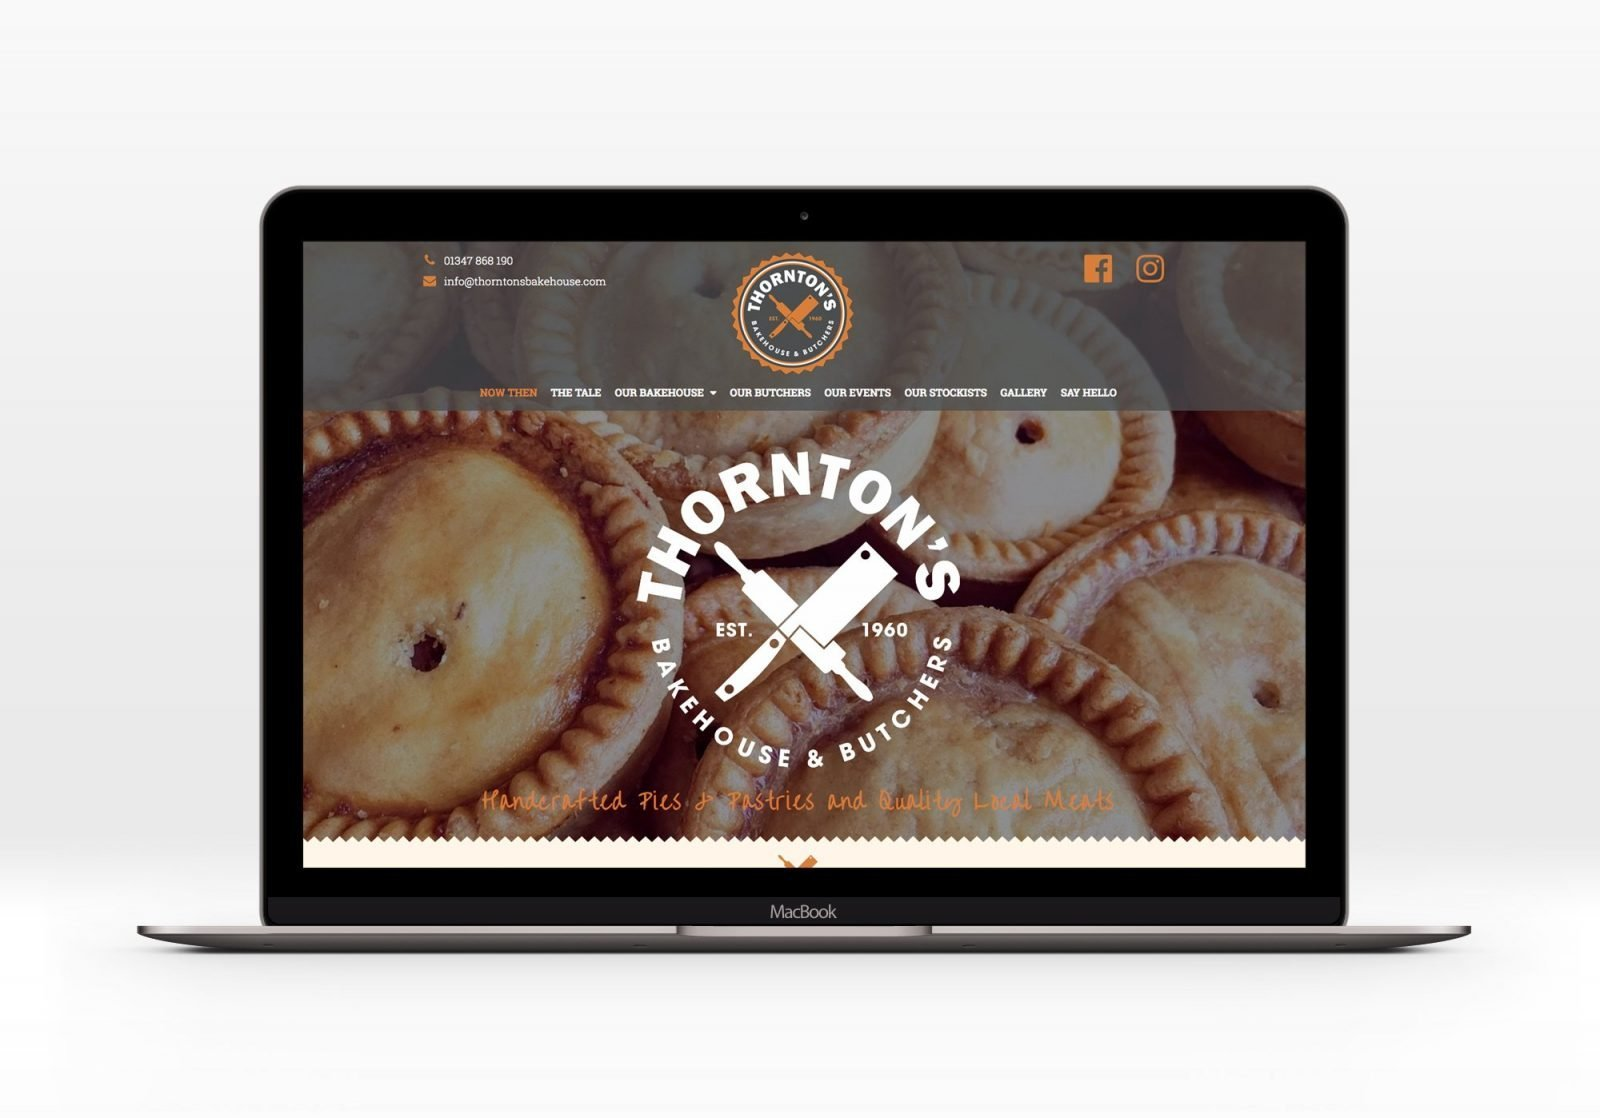 A laptop showing the home page for Thornton's Butchers and Bakehouse website design